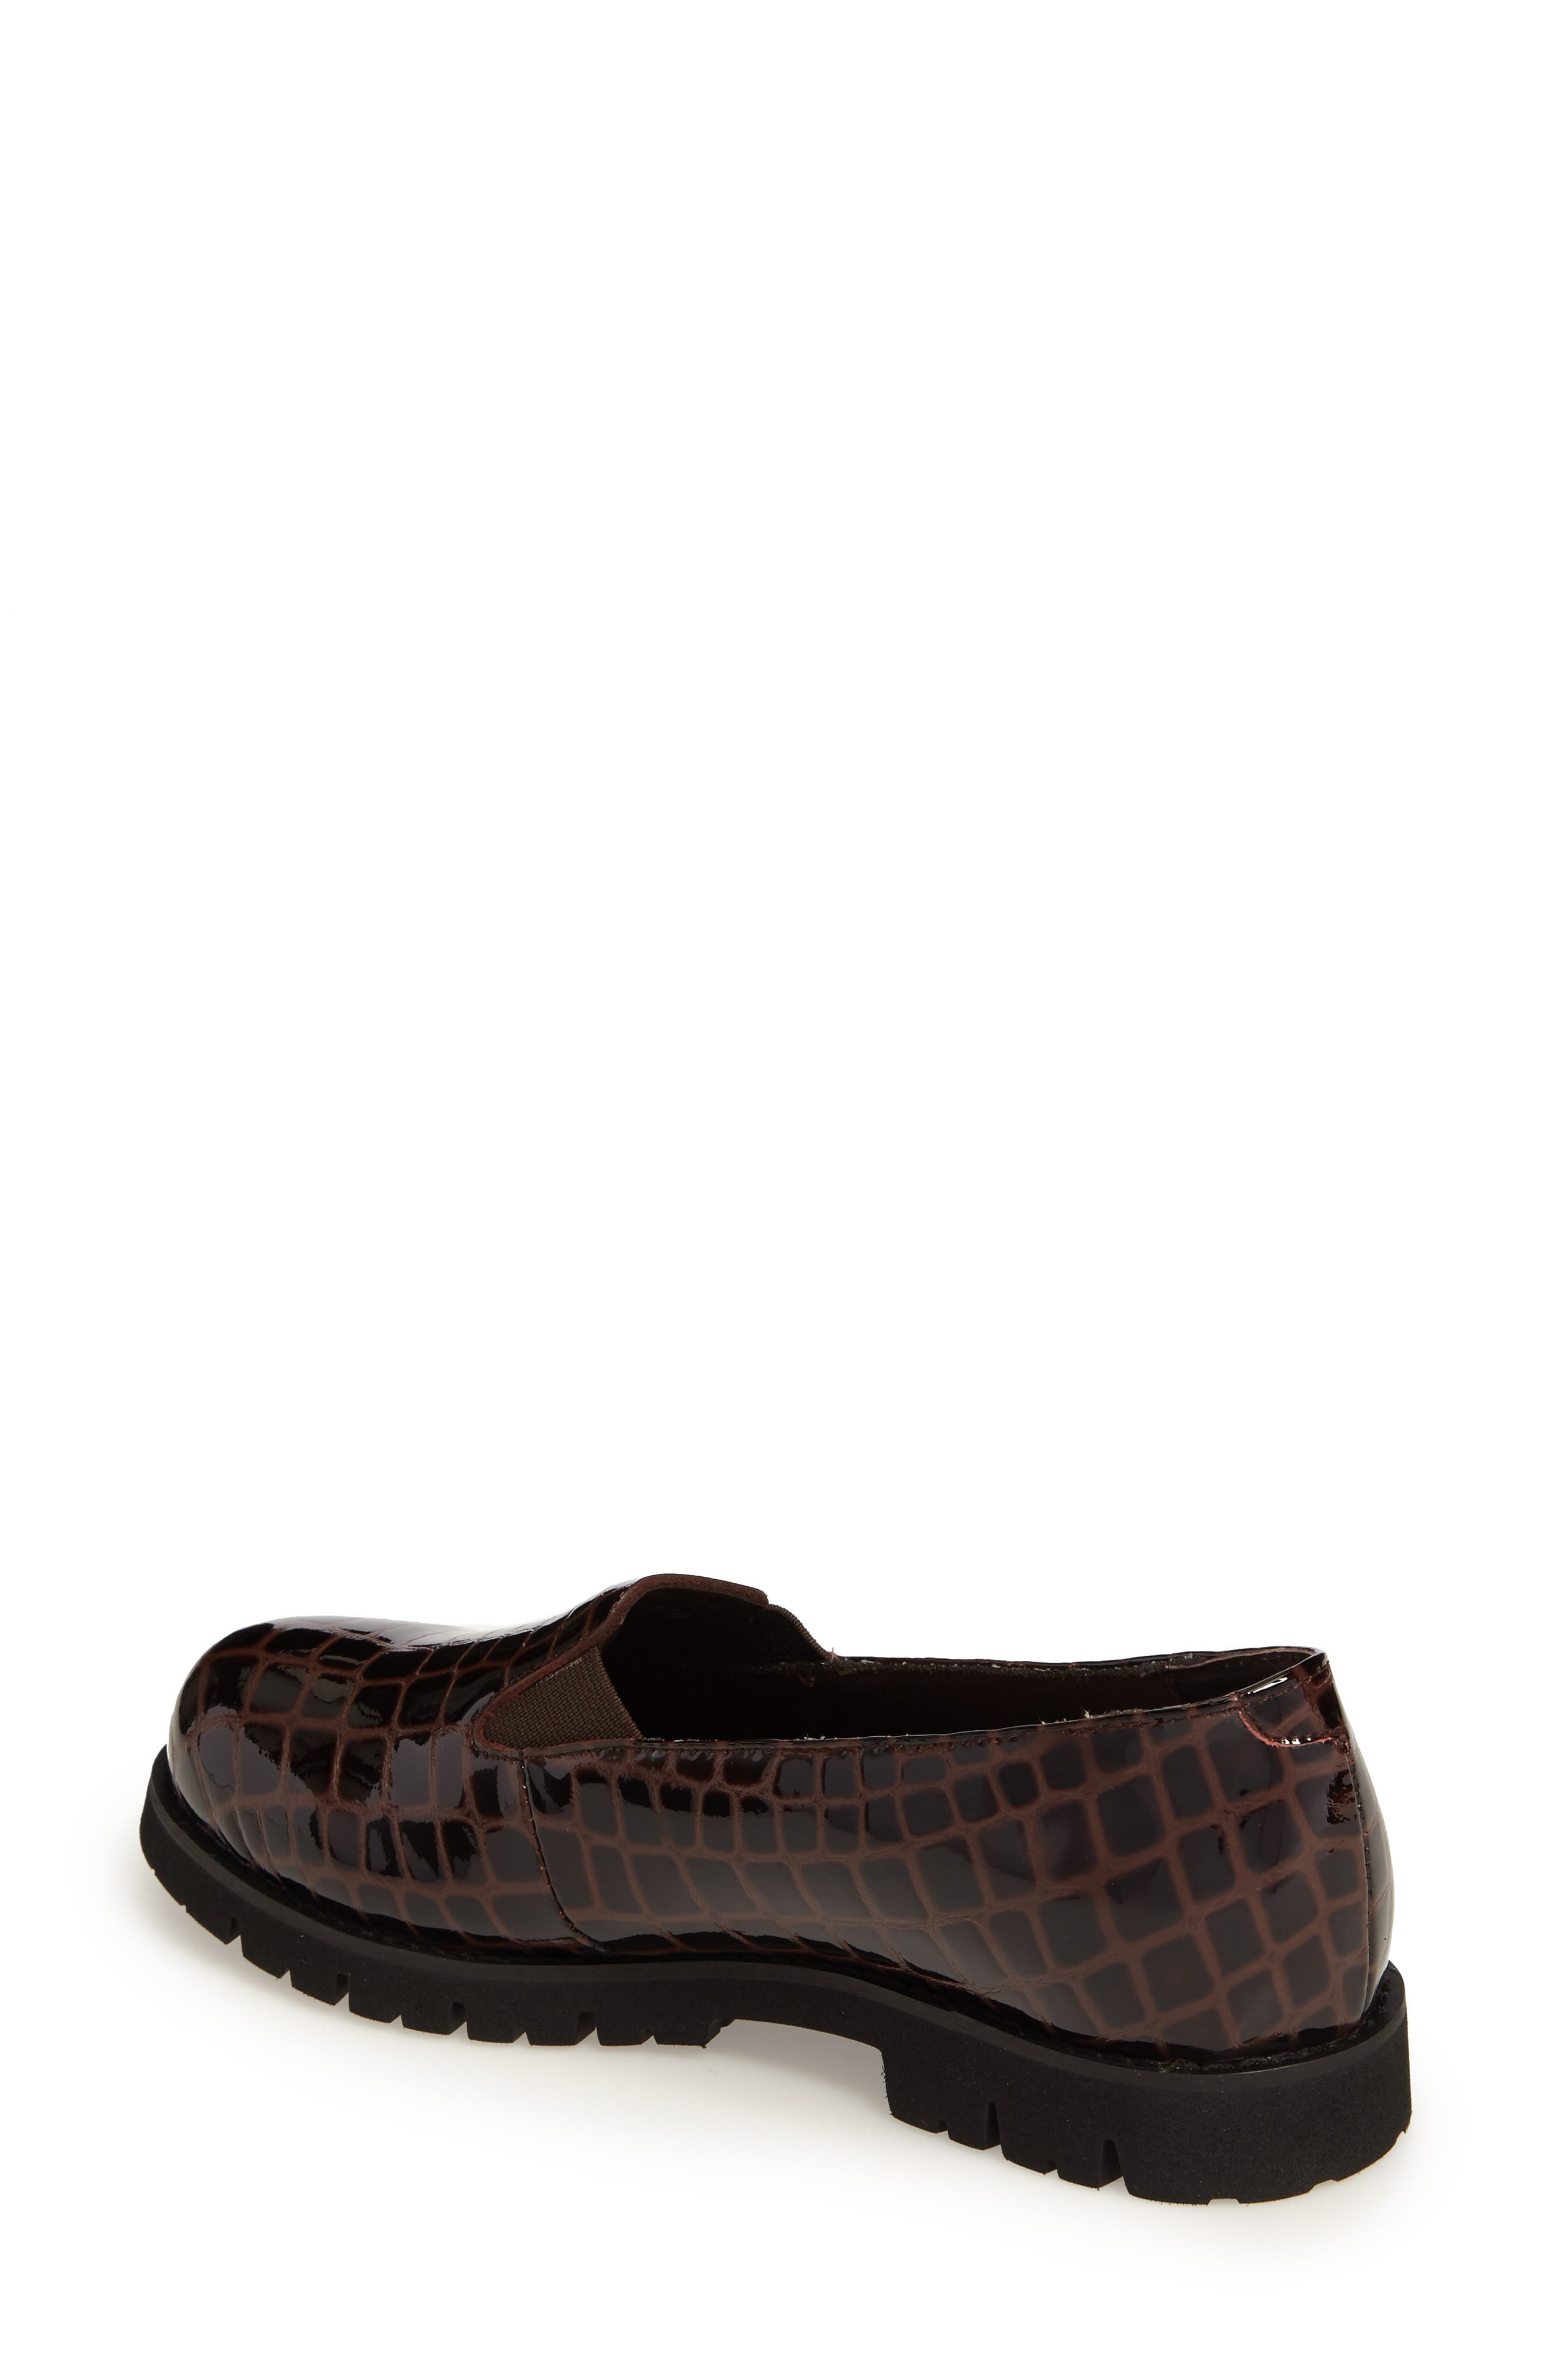 Pearl Loafer,                             Alternate thumbnail 4, color,